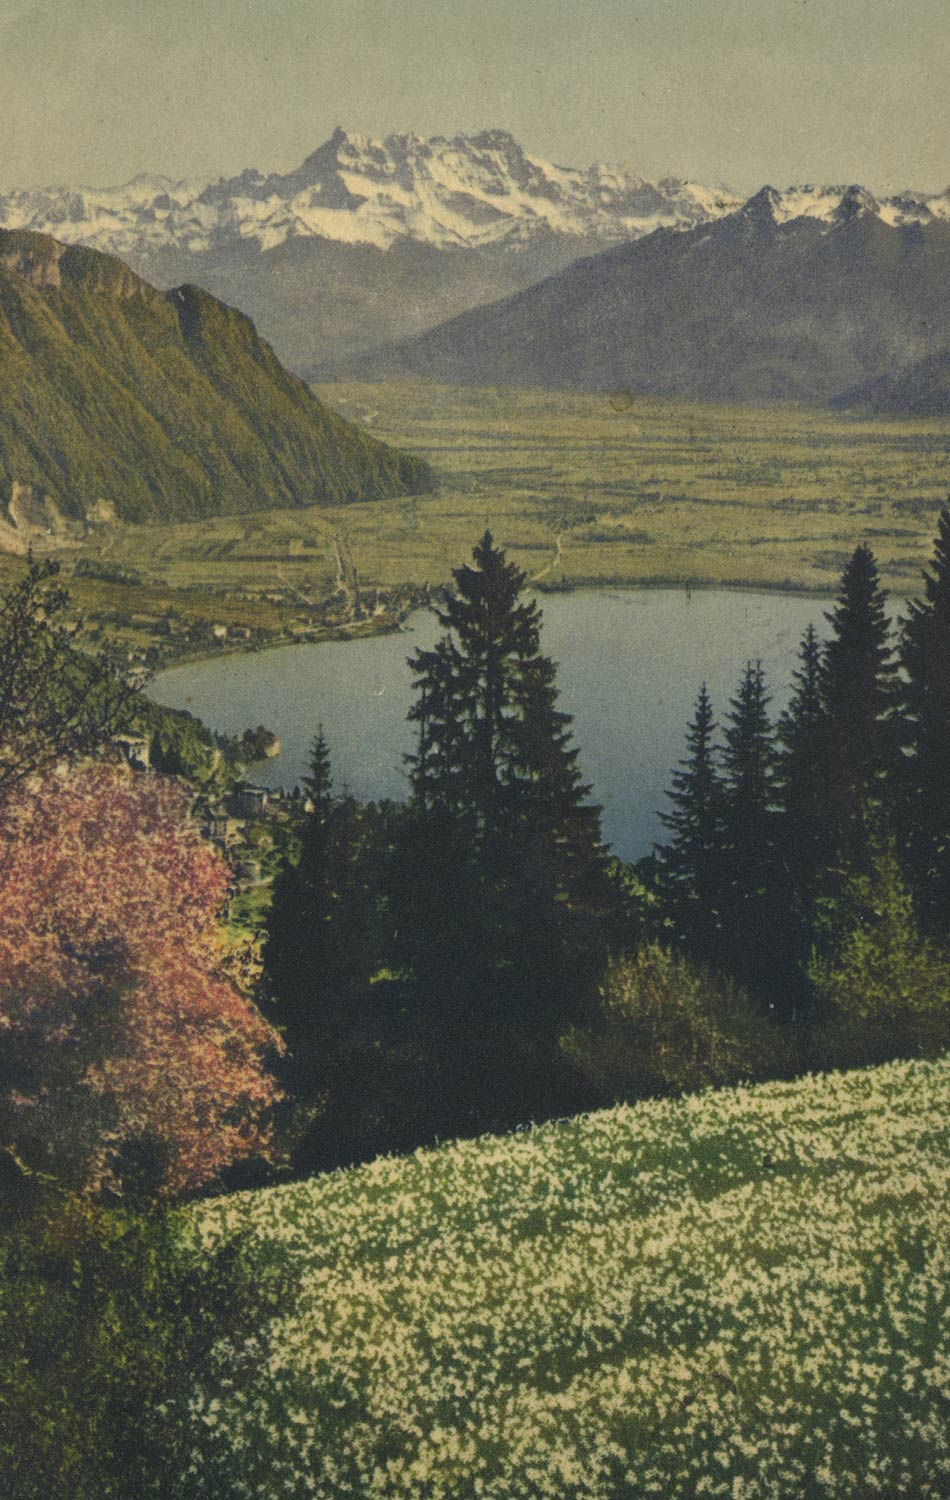 Champ de narcisses et les Dents du Midi © Photographie A. Kern, carte datée de 1947